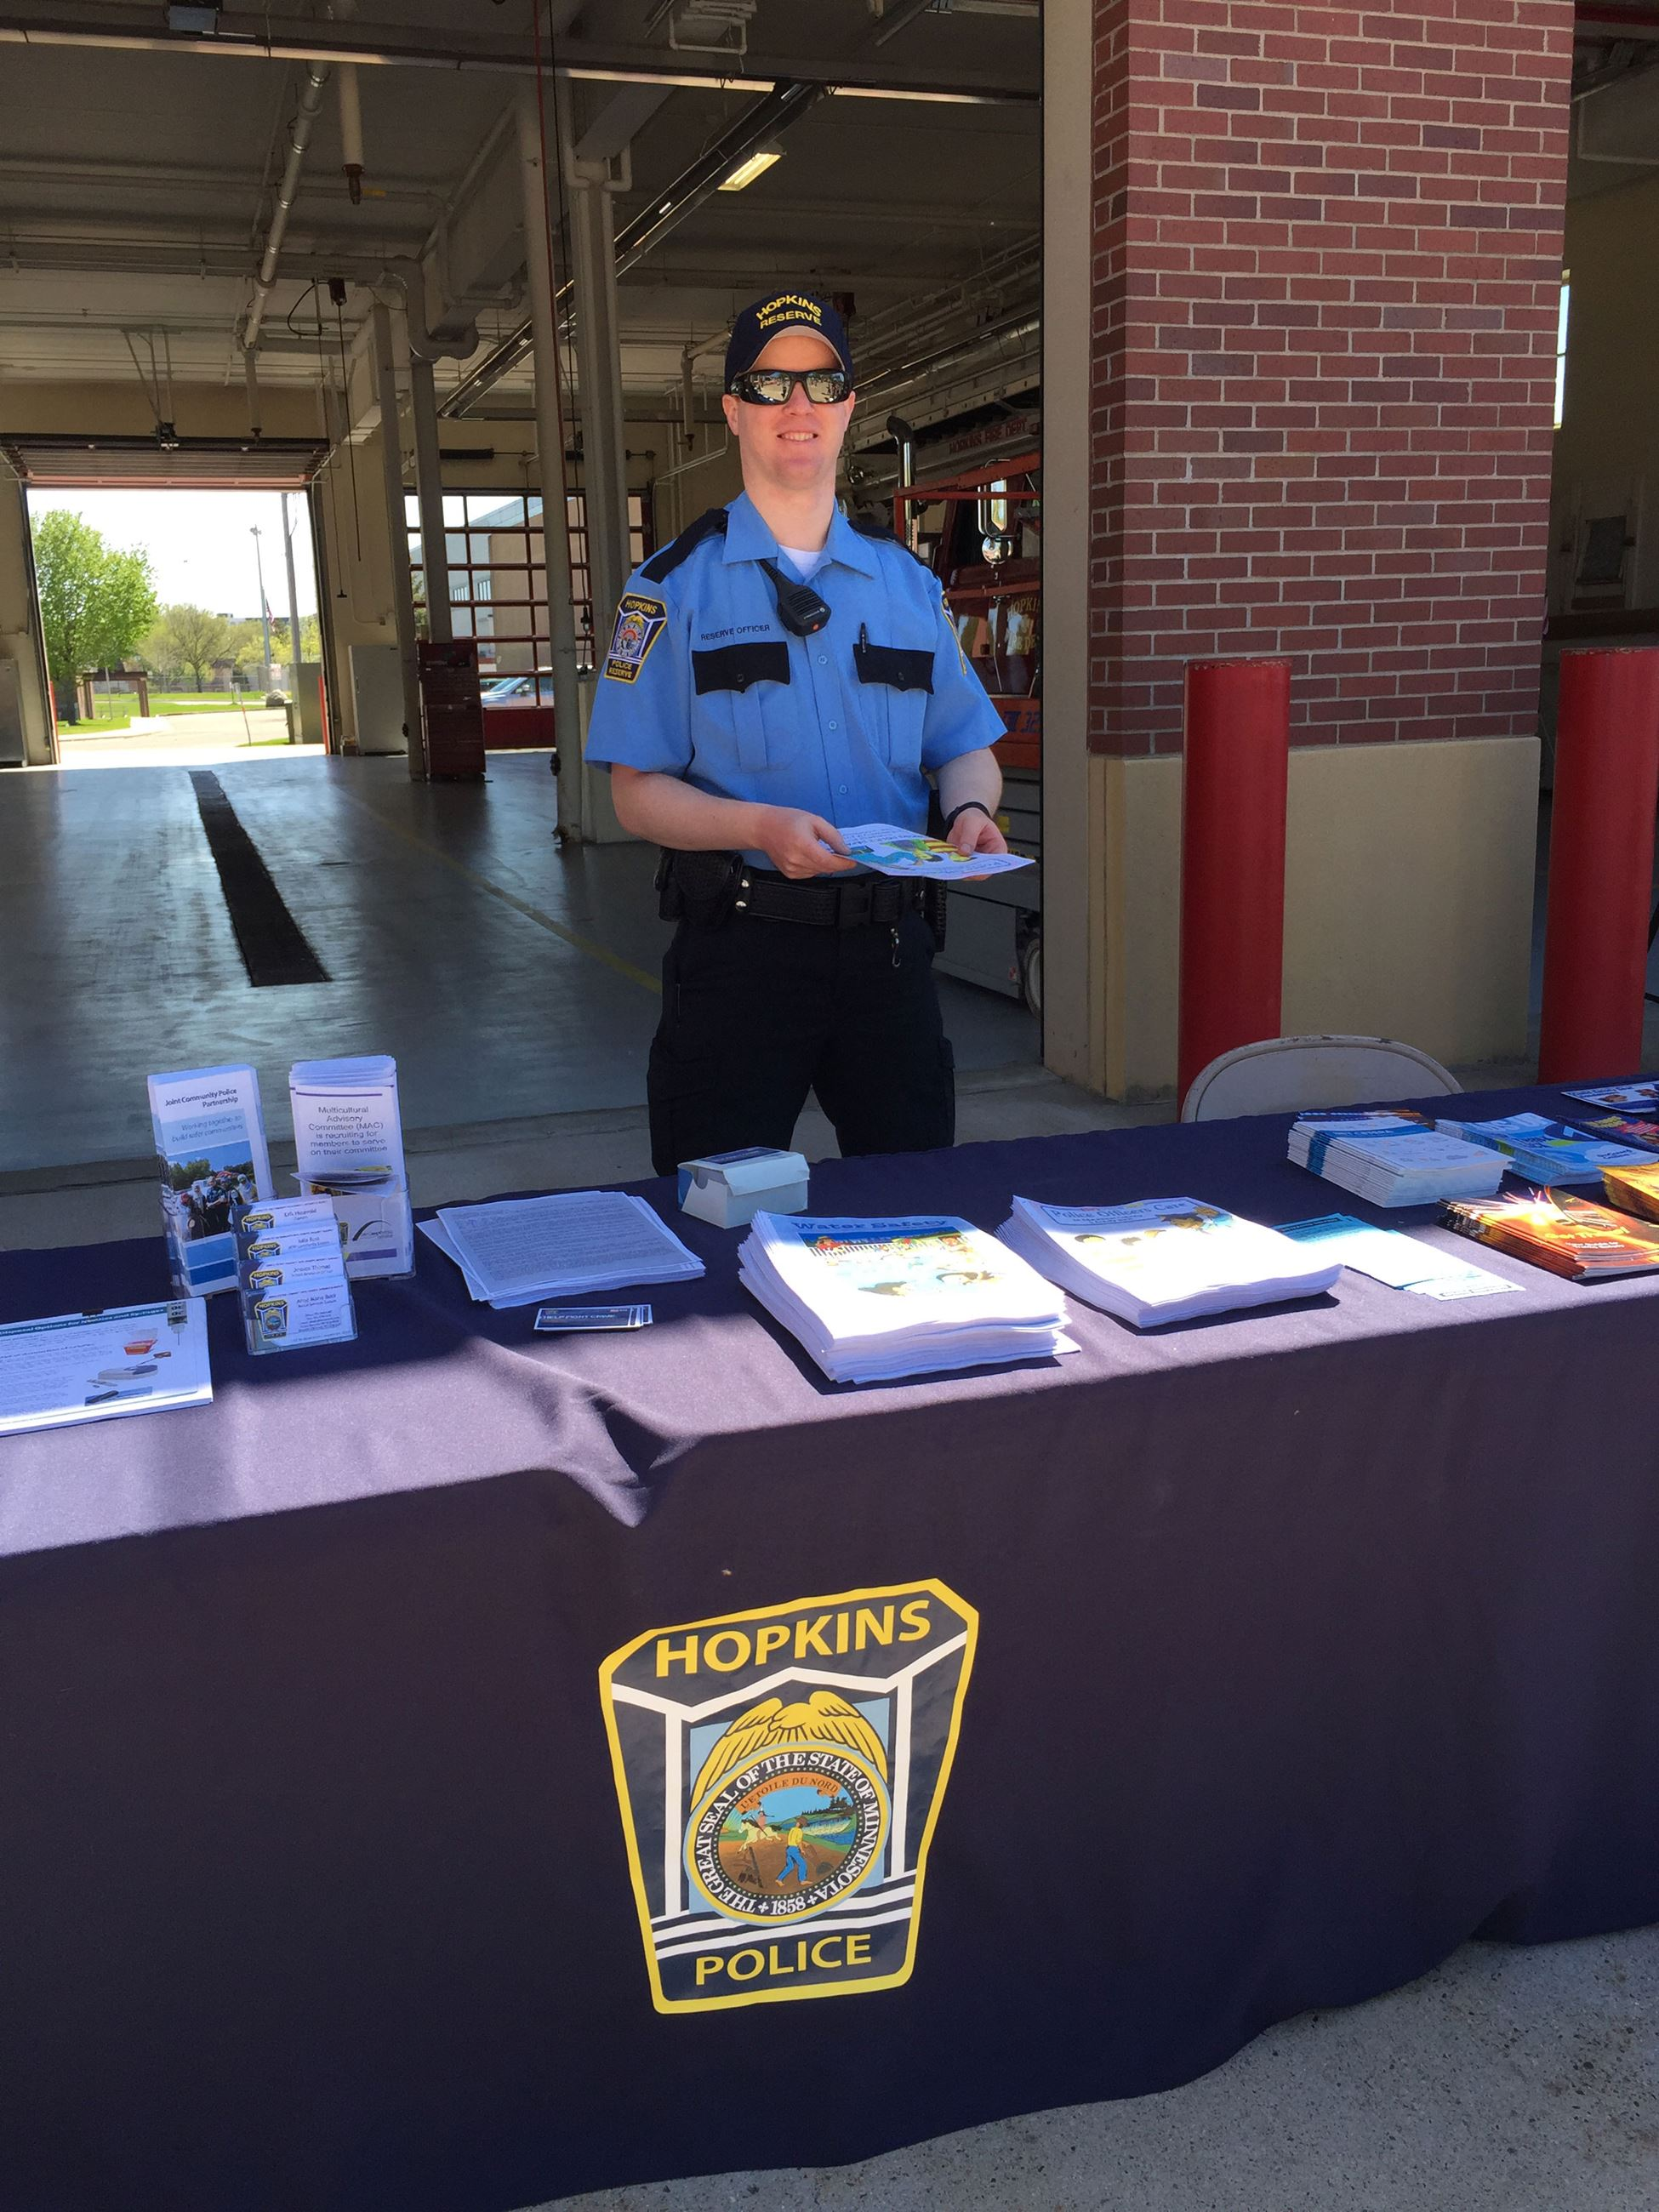 Police Reserves Helping in the Community - by the Booth at Fire Open House